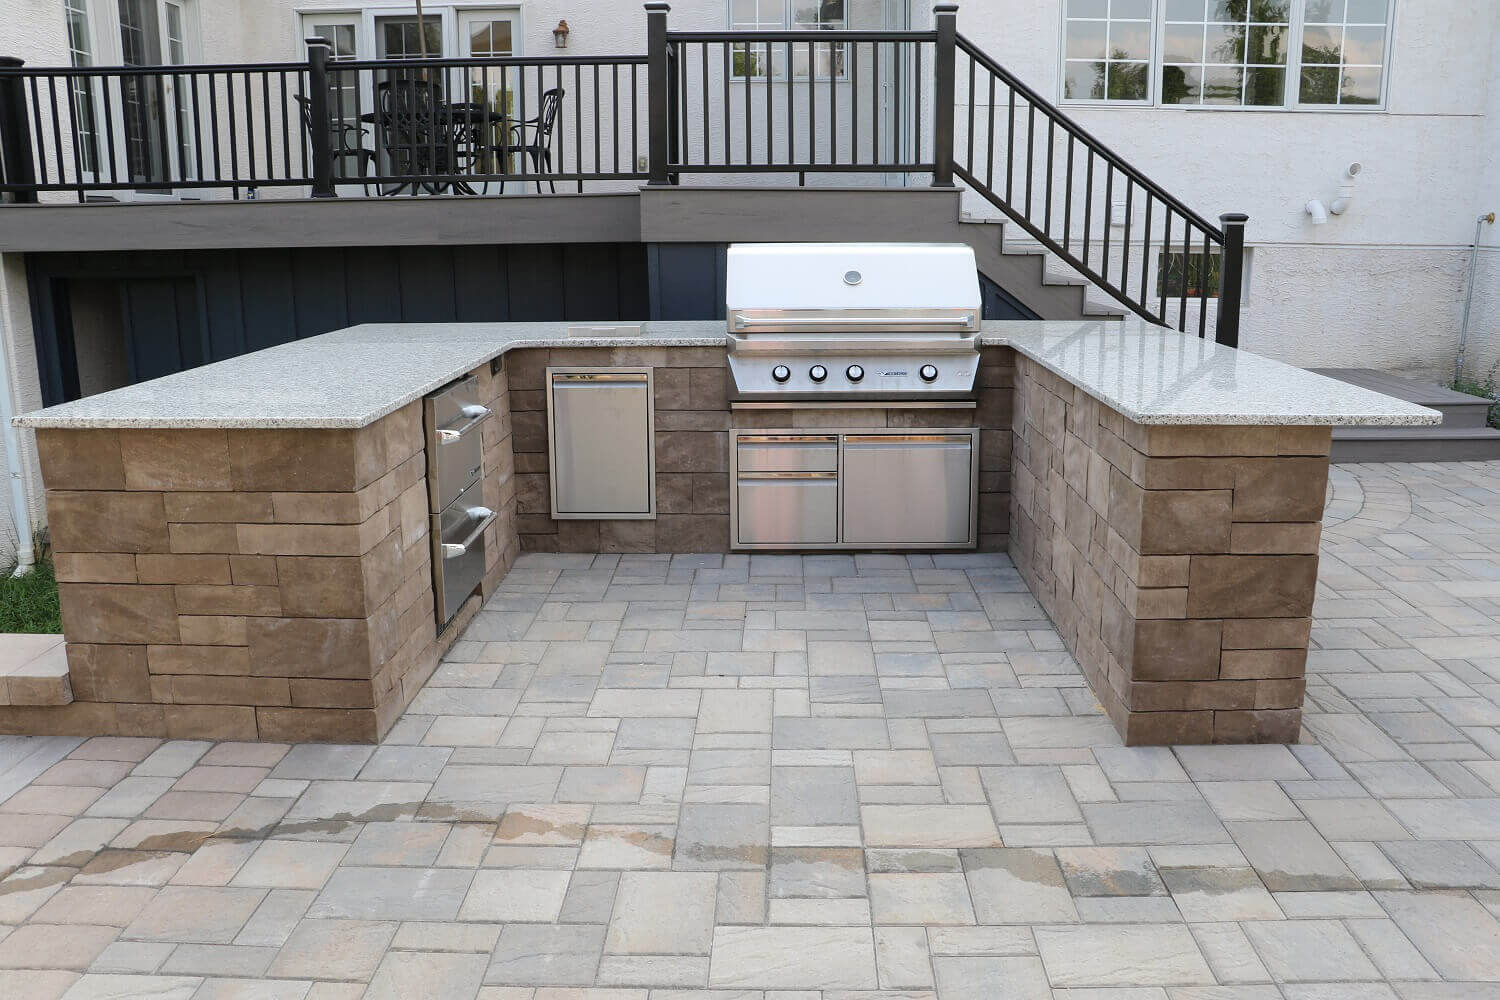 outdoor kitchen bar reclaimed wood cabinets custom built kitchens grills burkholder landscape techo bloc with counter height trash grill and storage drawers